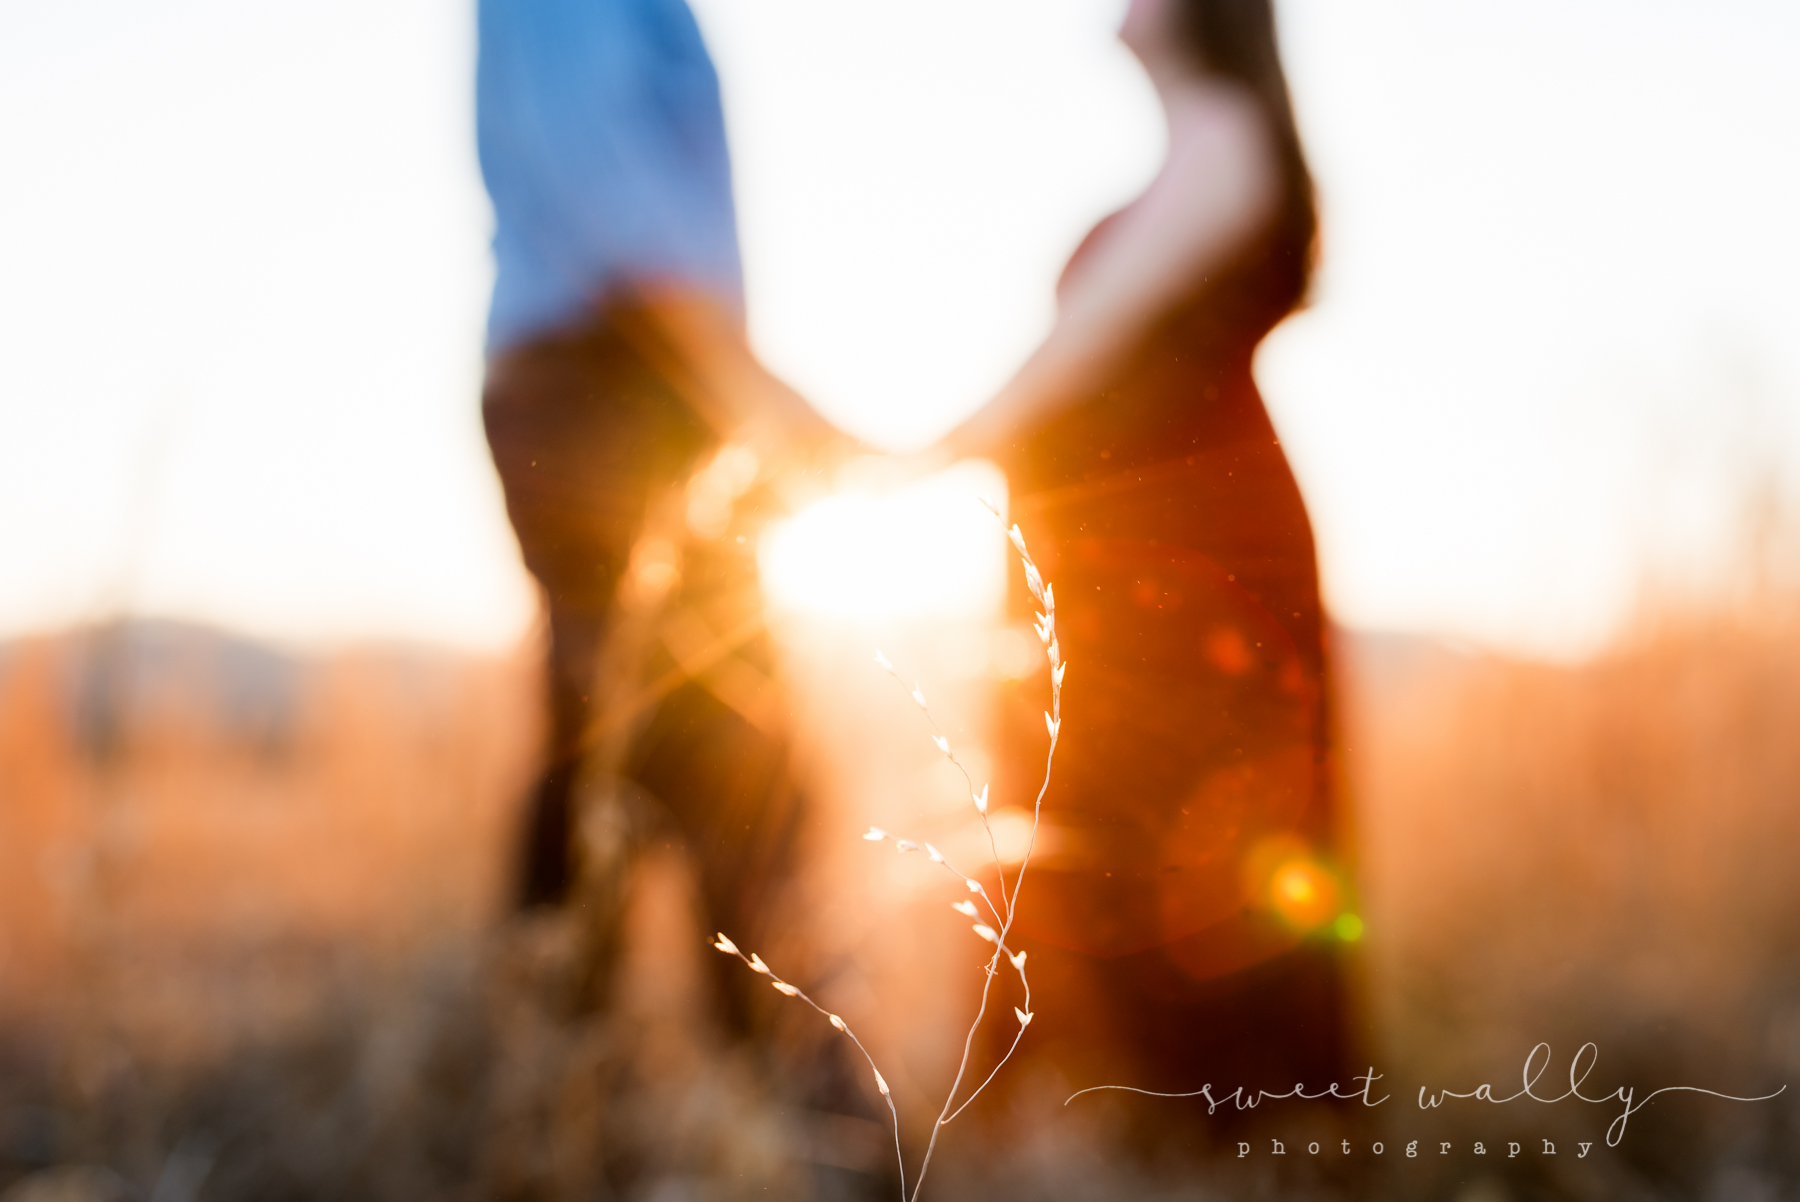 Artfully out of focus | Sweet Wally Photography | Nashville Maternity Photographer